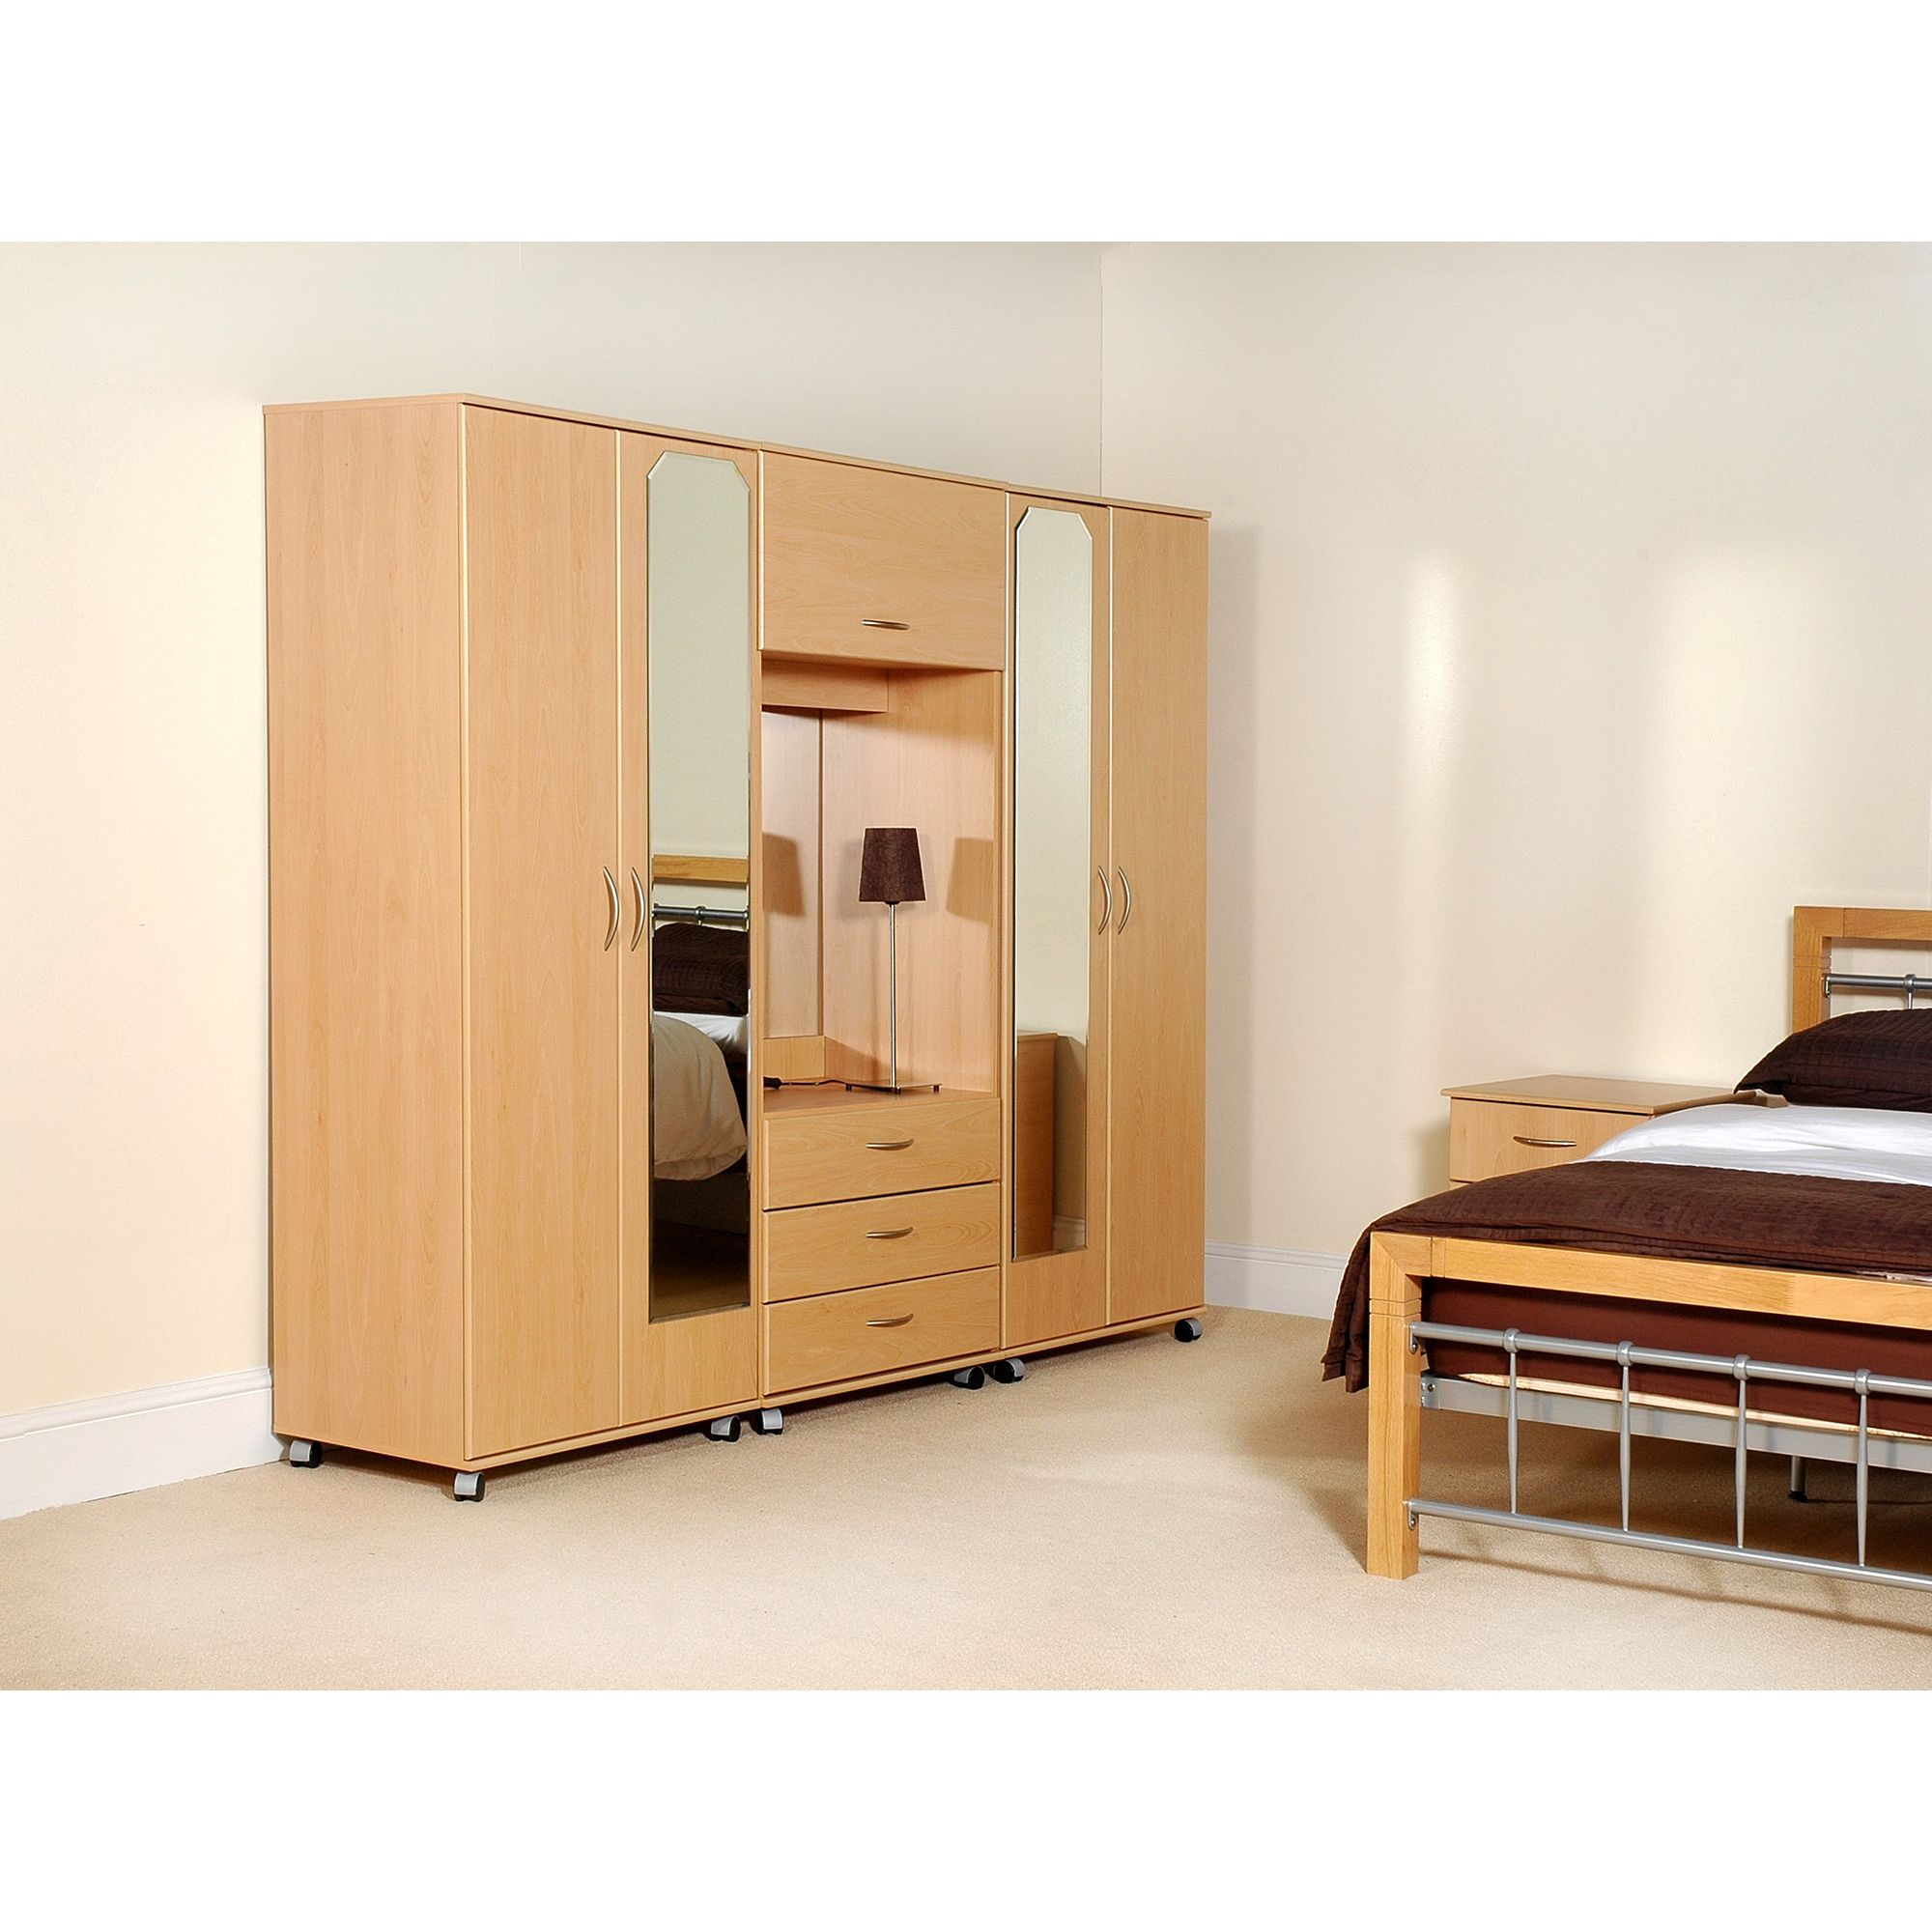 Ideal Furniture New York 4 Door Fitment - Gloss Black at Tesco Direct